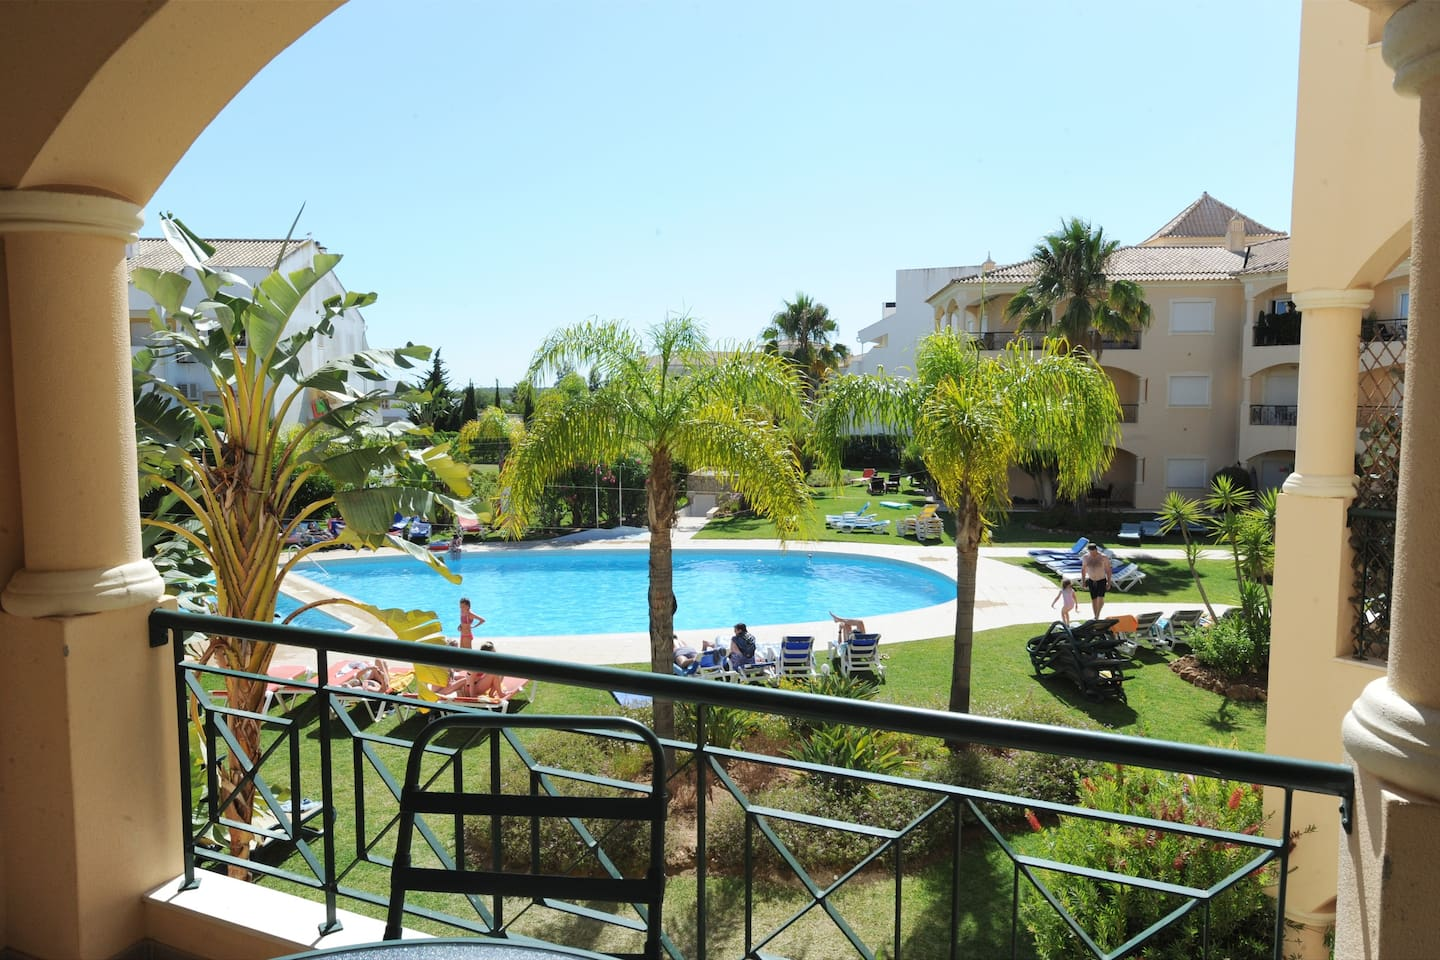 UNWIND.ENJOY.RELAX  Nice unobstructed view of the pool from the balcony.